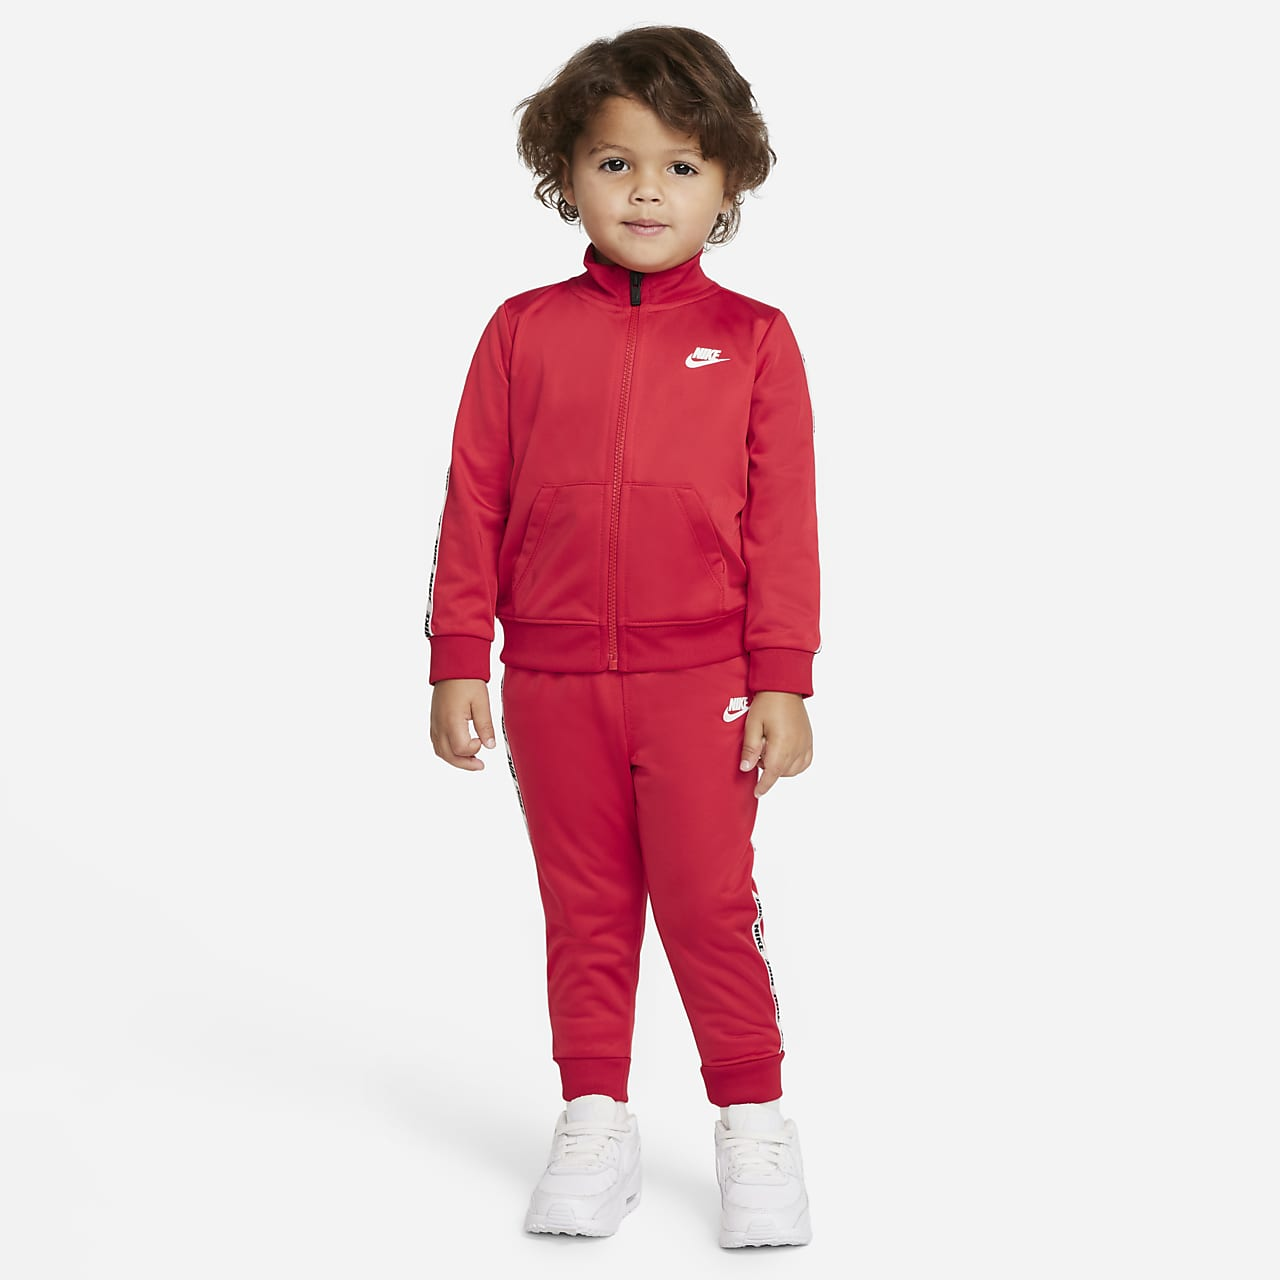 Nike Baby (12-24M) Tracksuit